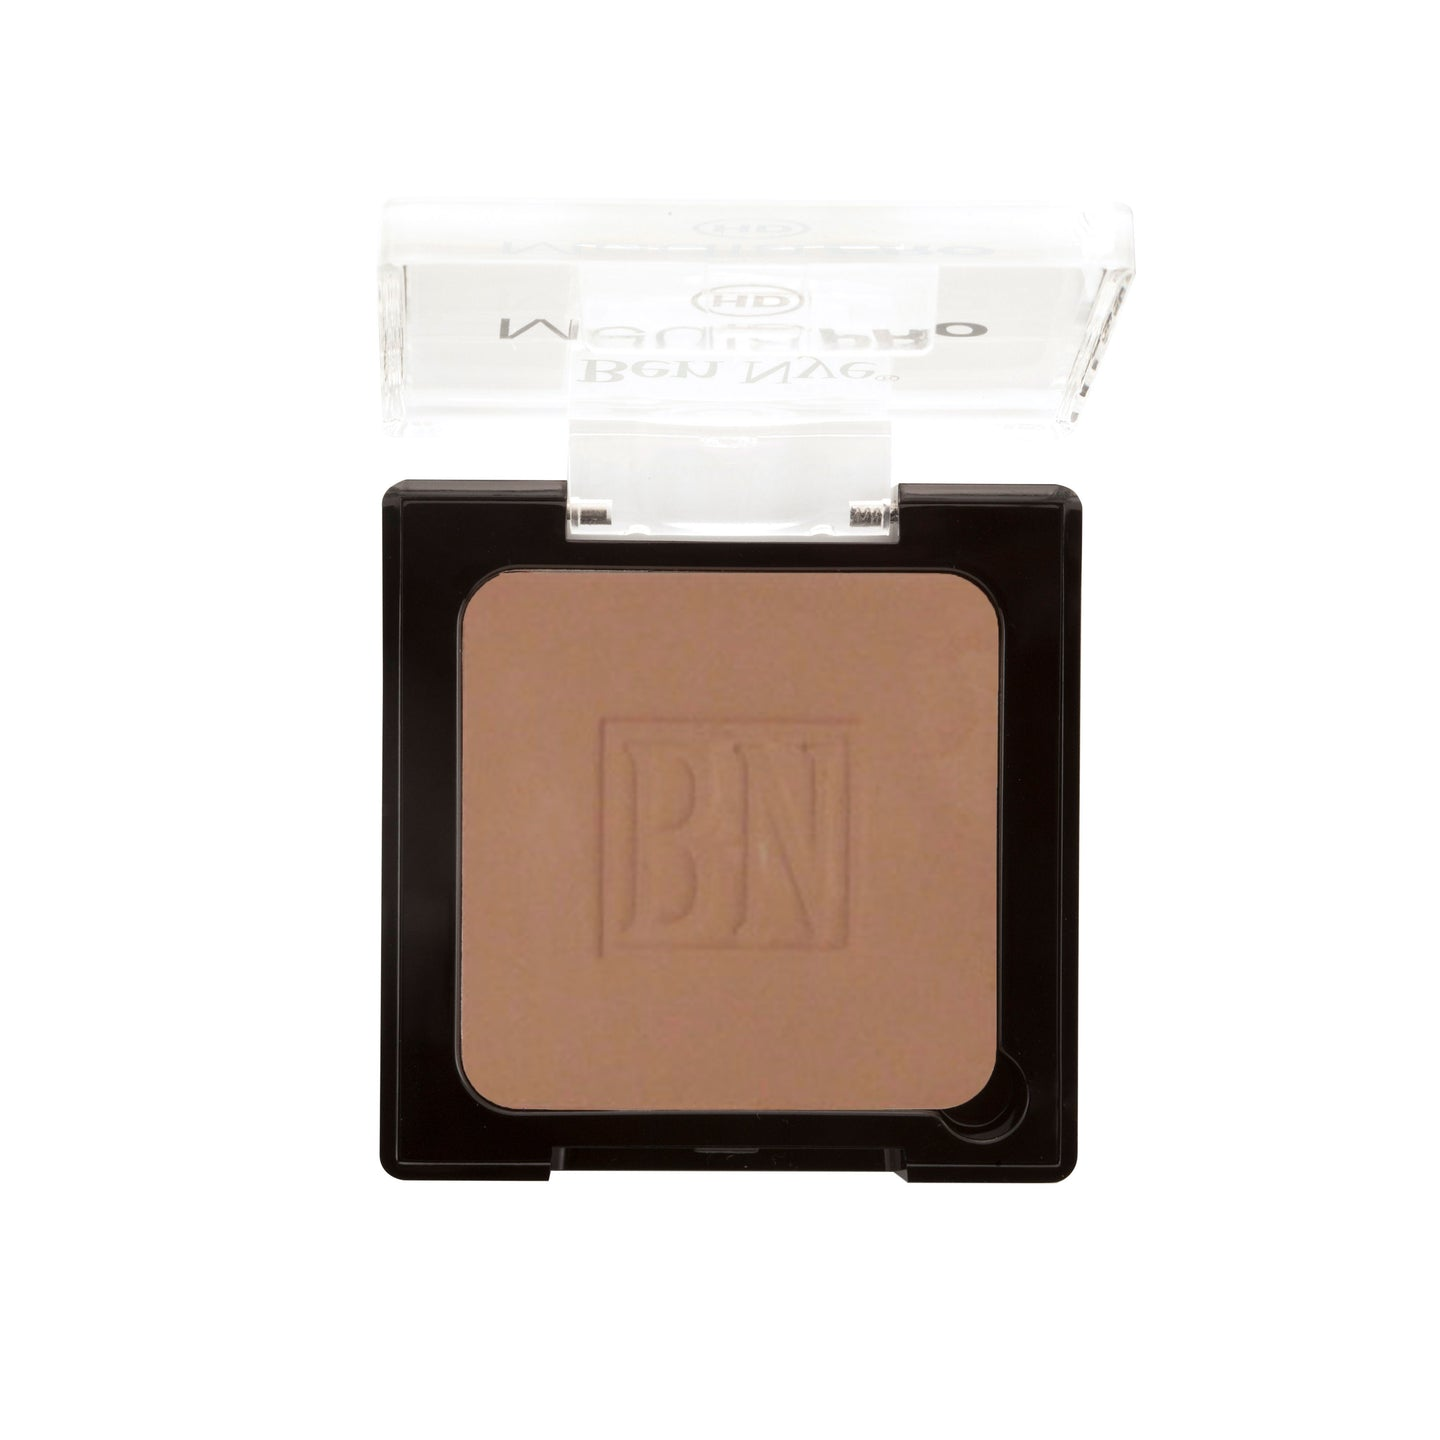 Ben Nye MediaPRO HD Poudre Face & Body Contour Compacts